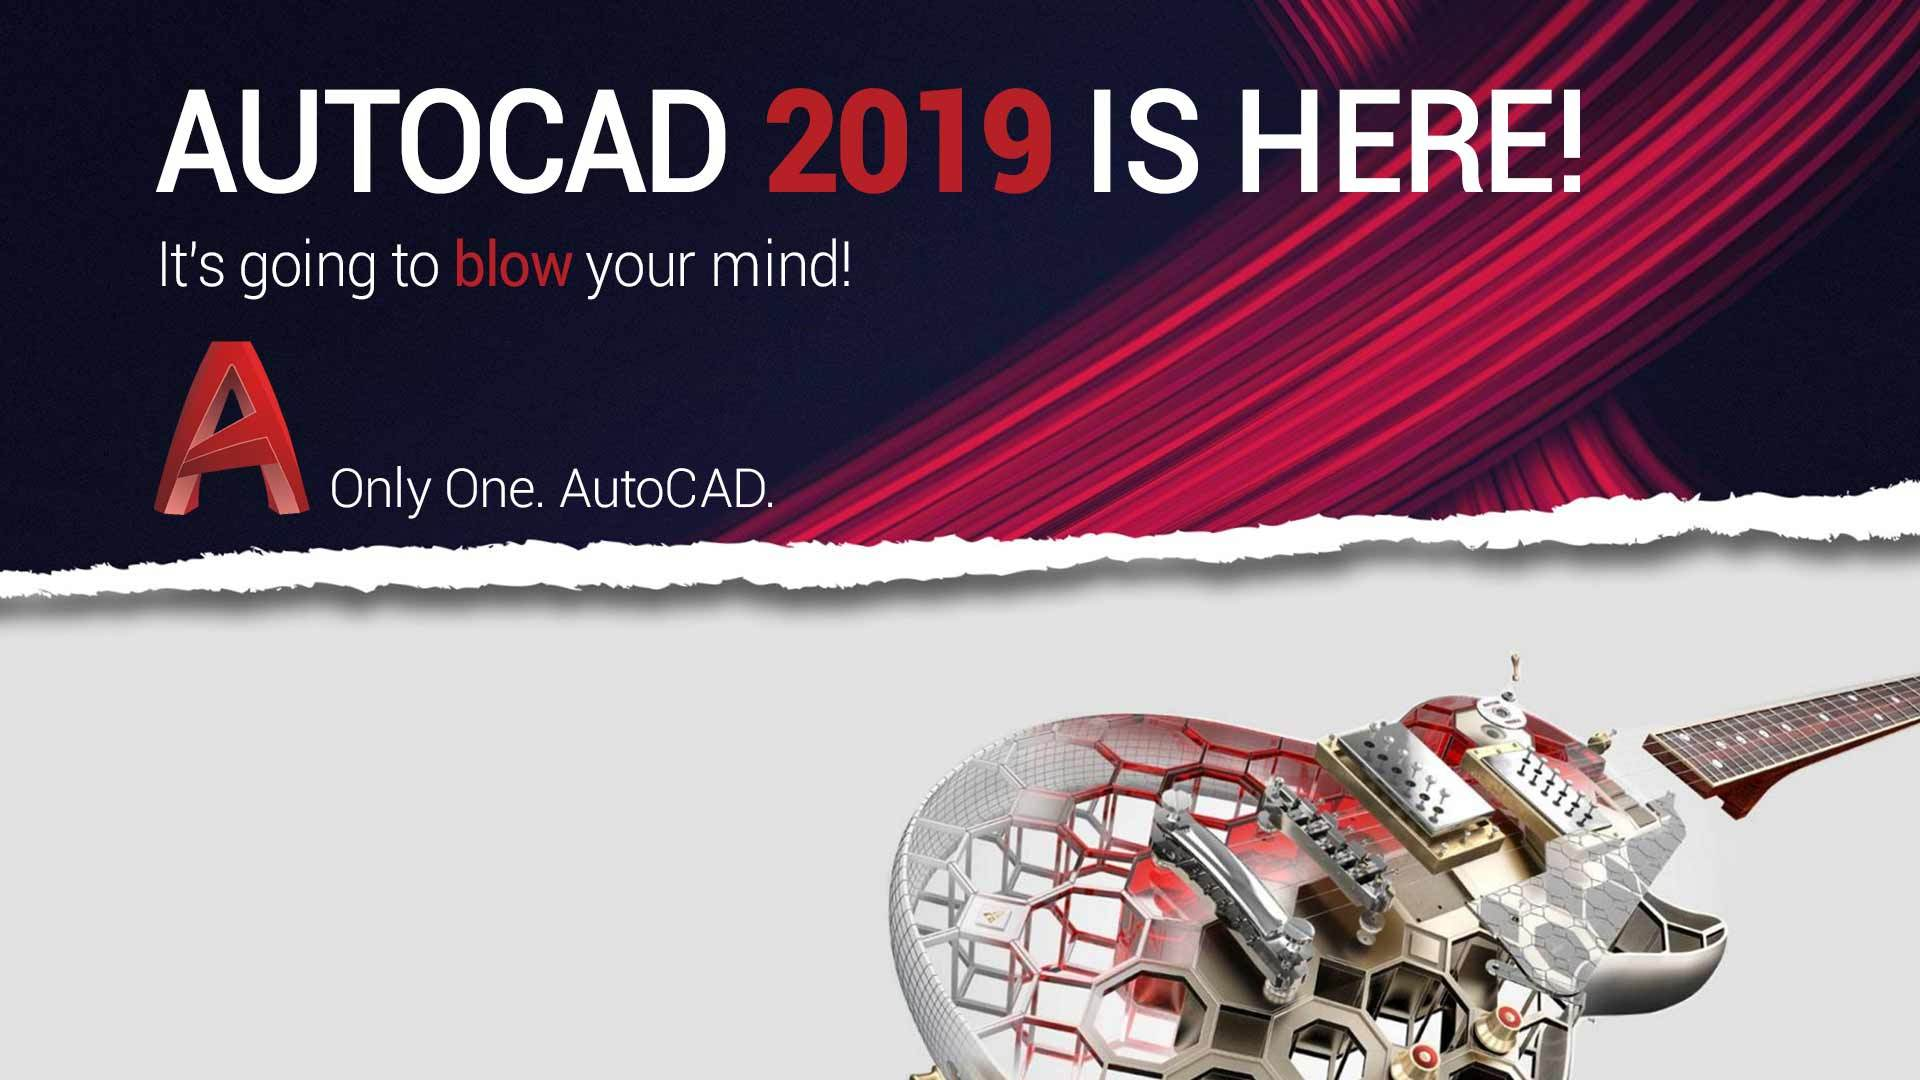 AutoCAD 2019 - Only One. AutoCAD.